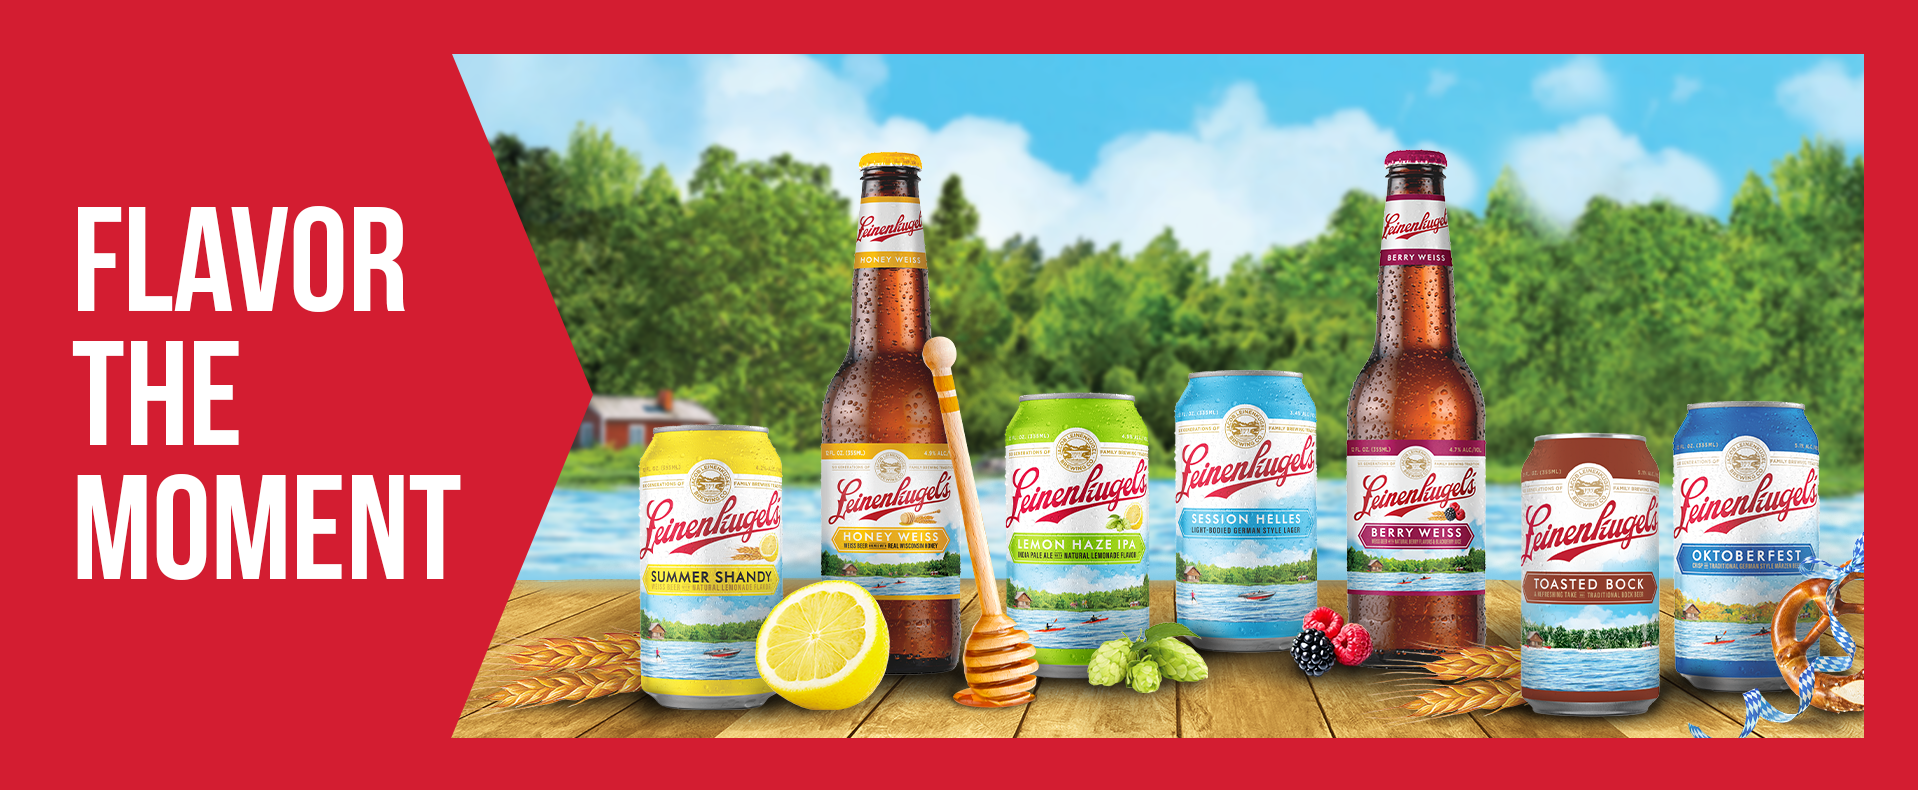 Leinie Beer Flavor the Moment